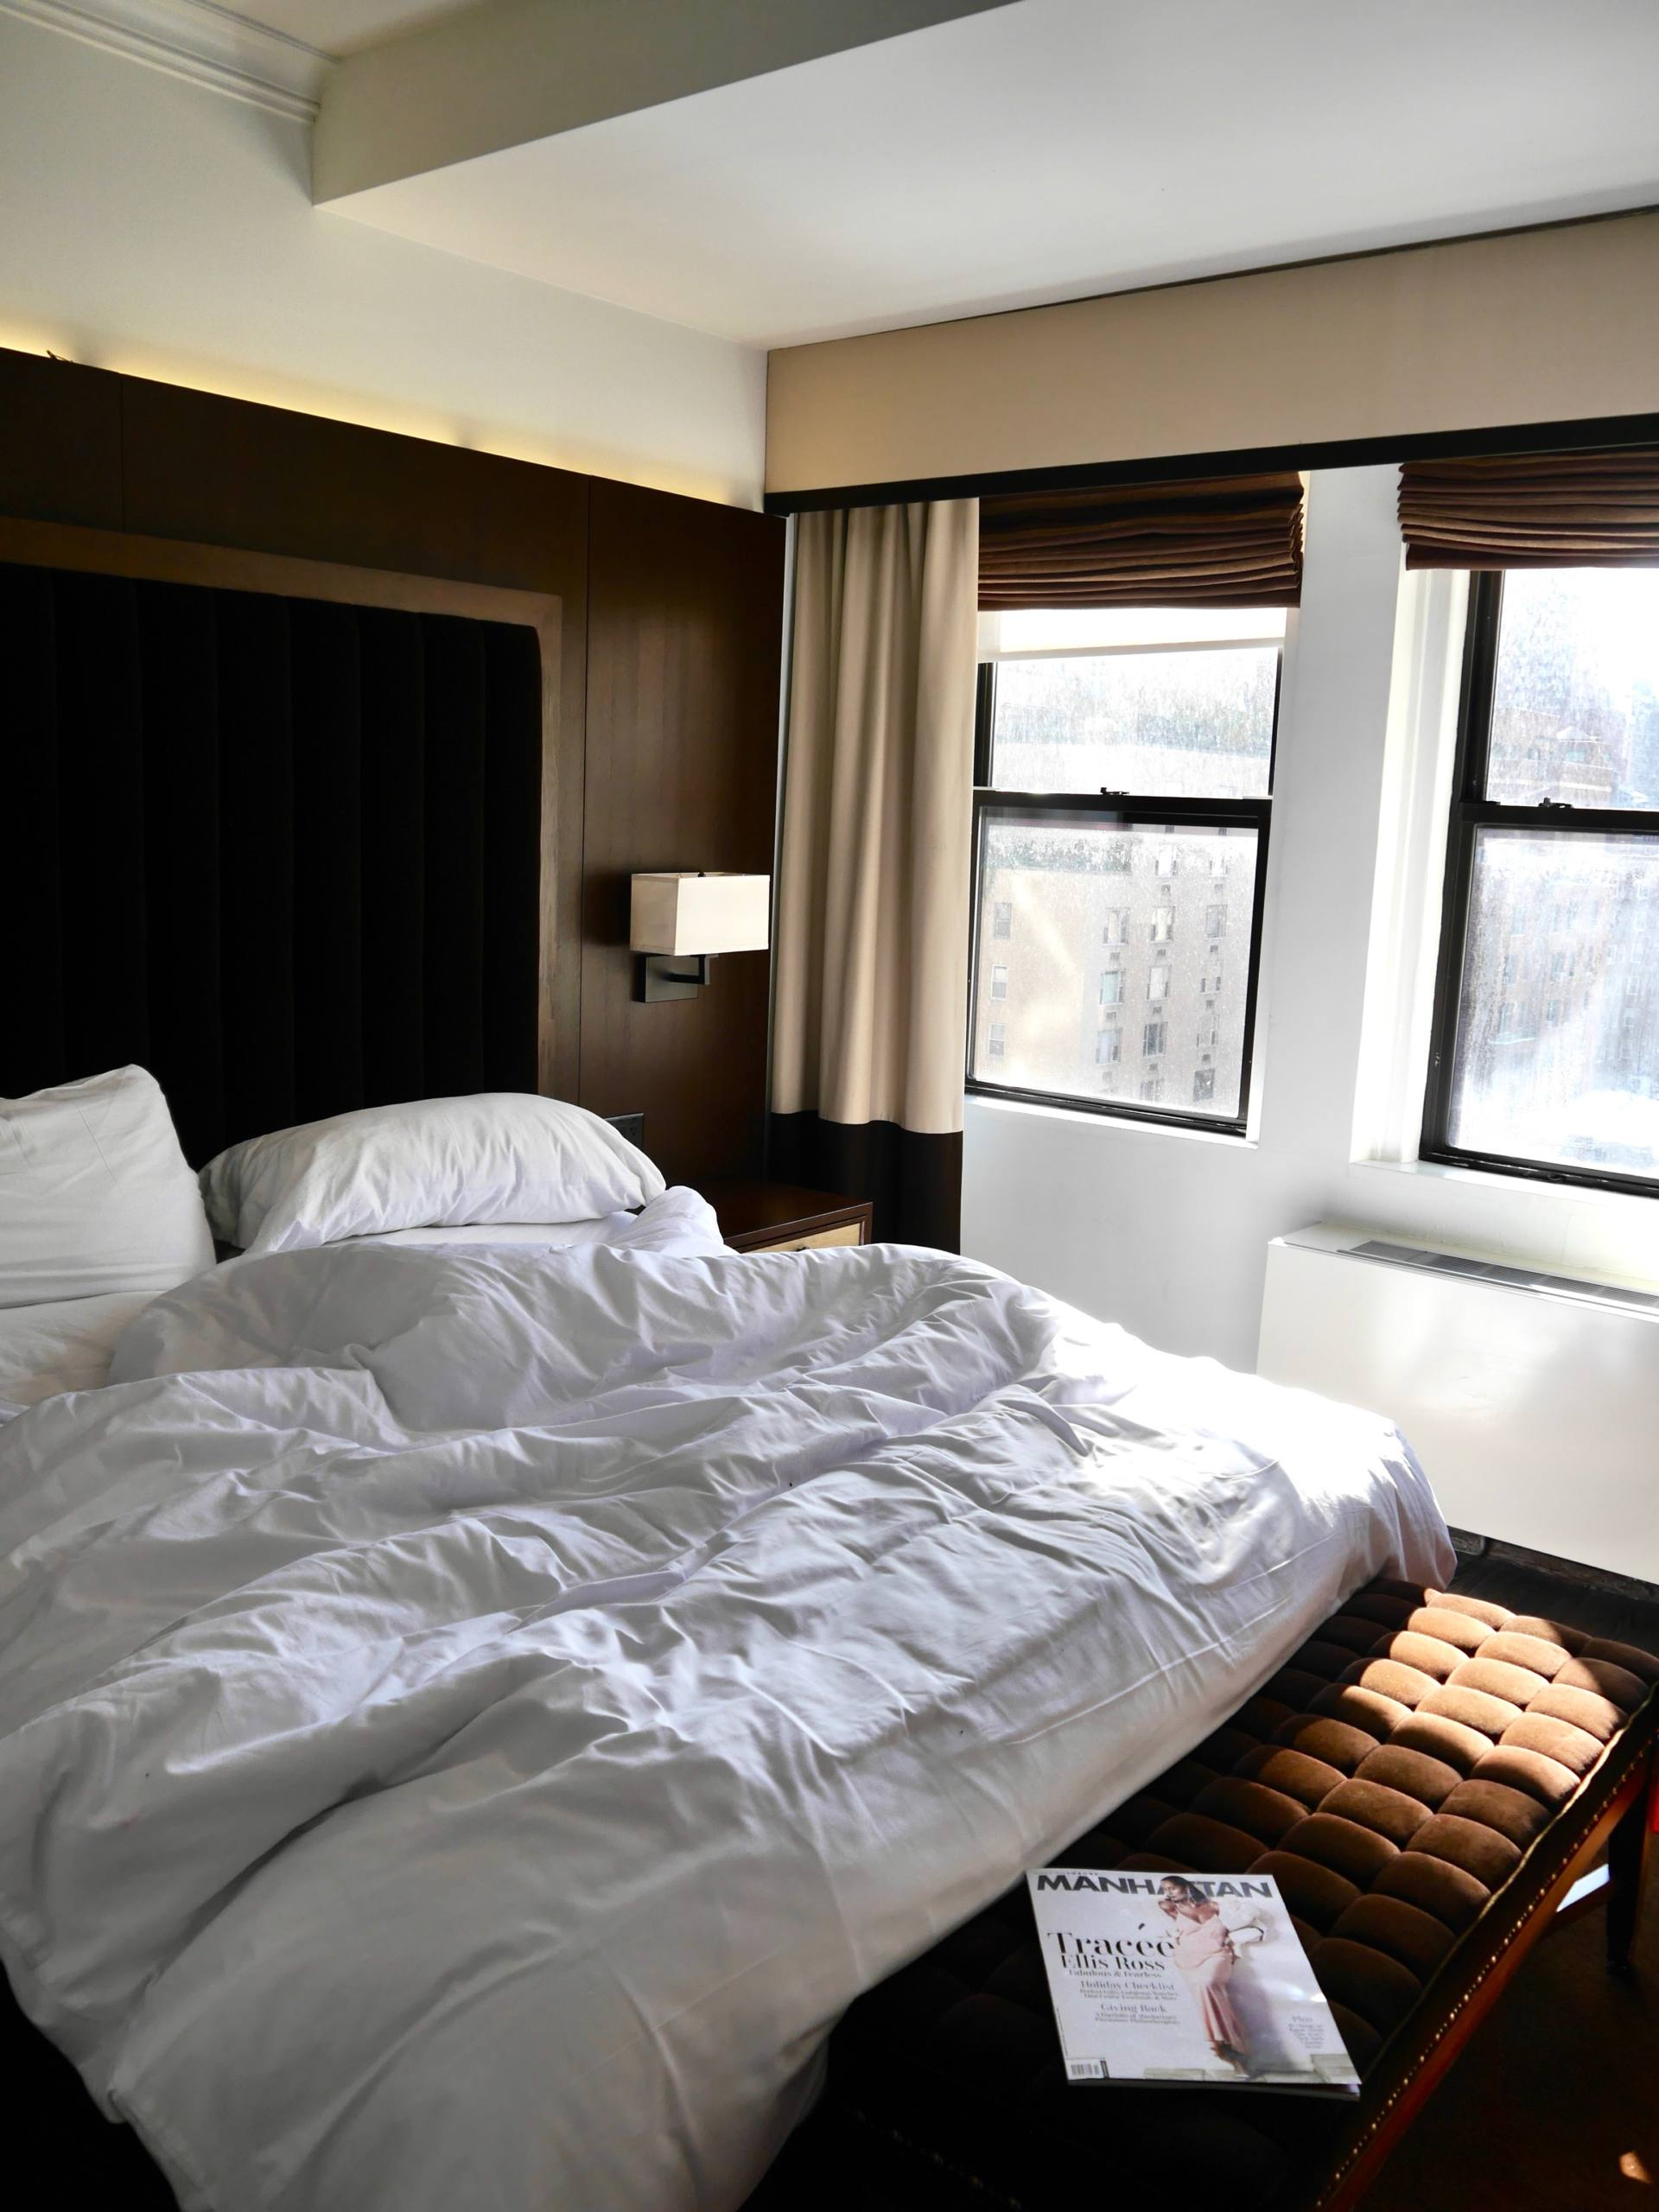 Online Voucher Code Printable New York Hotel  2020